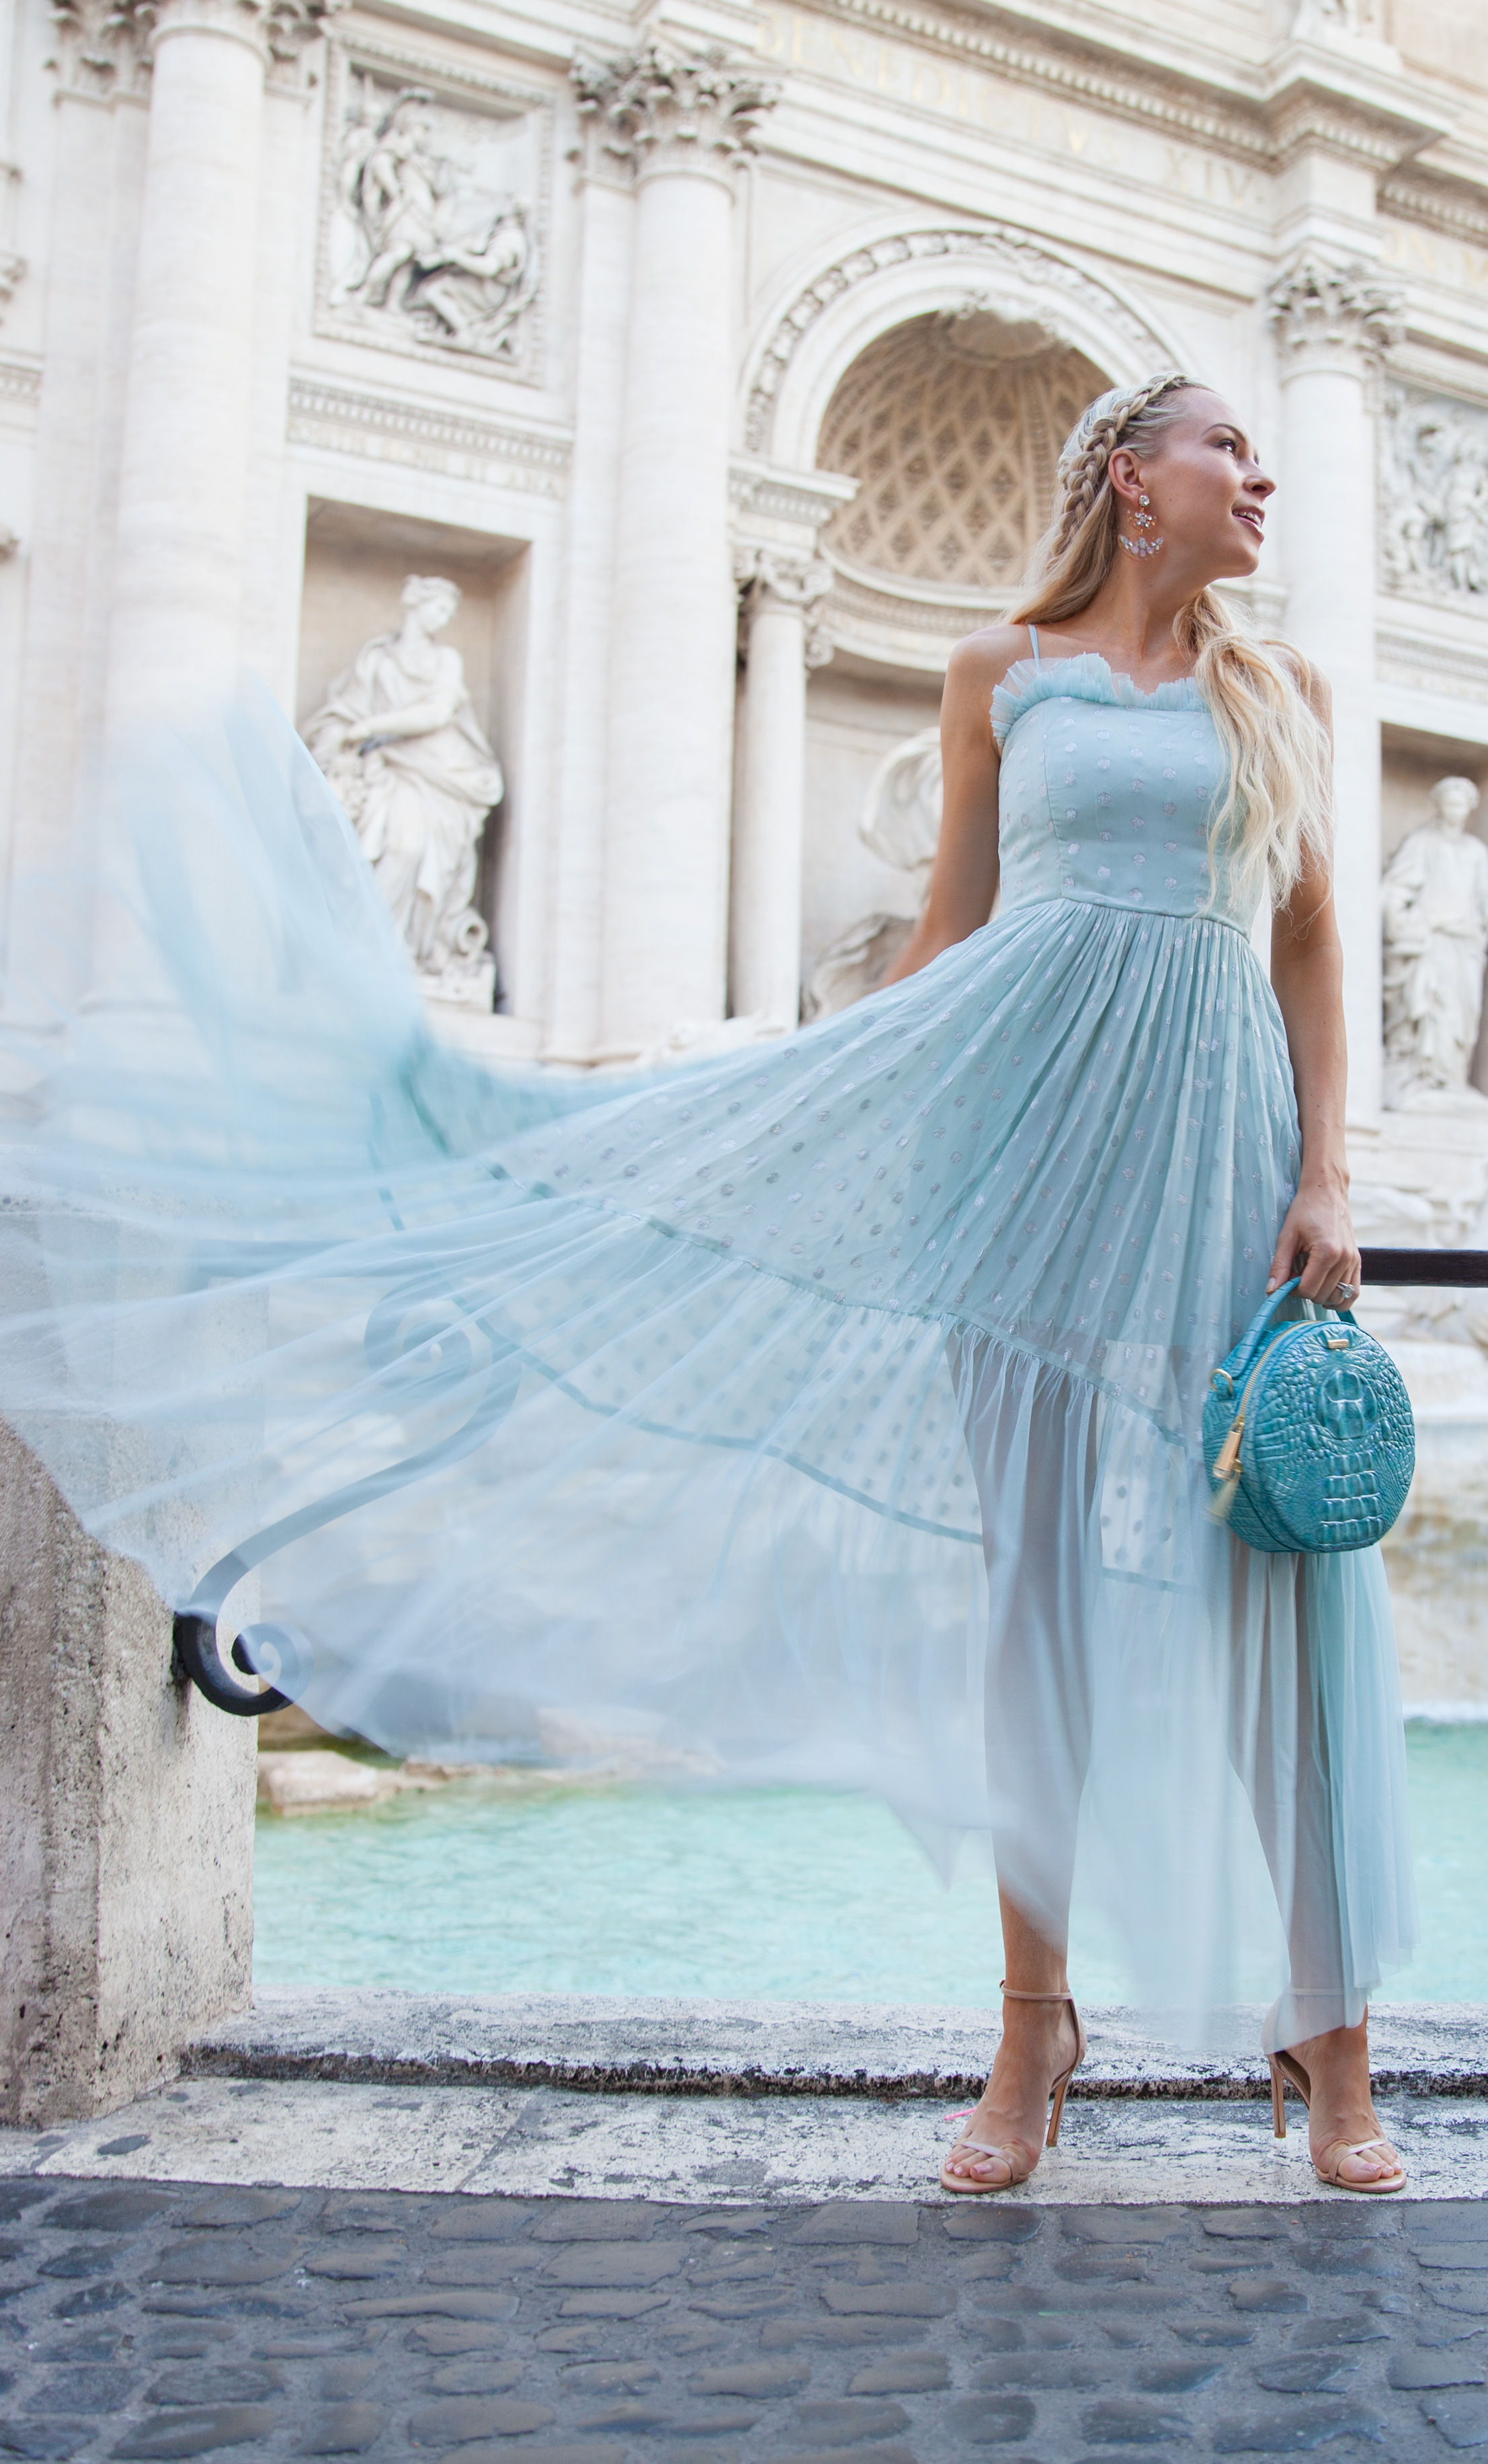 ASOS DESIGN Petite dobby metallic maxi dress at the trevi fountain in rome